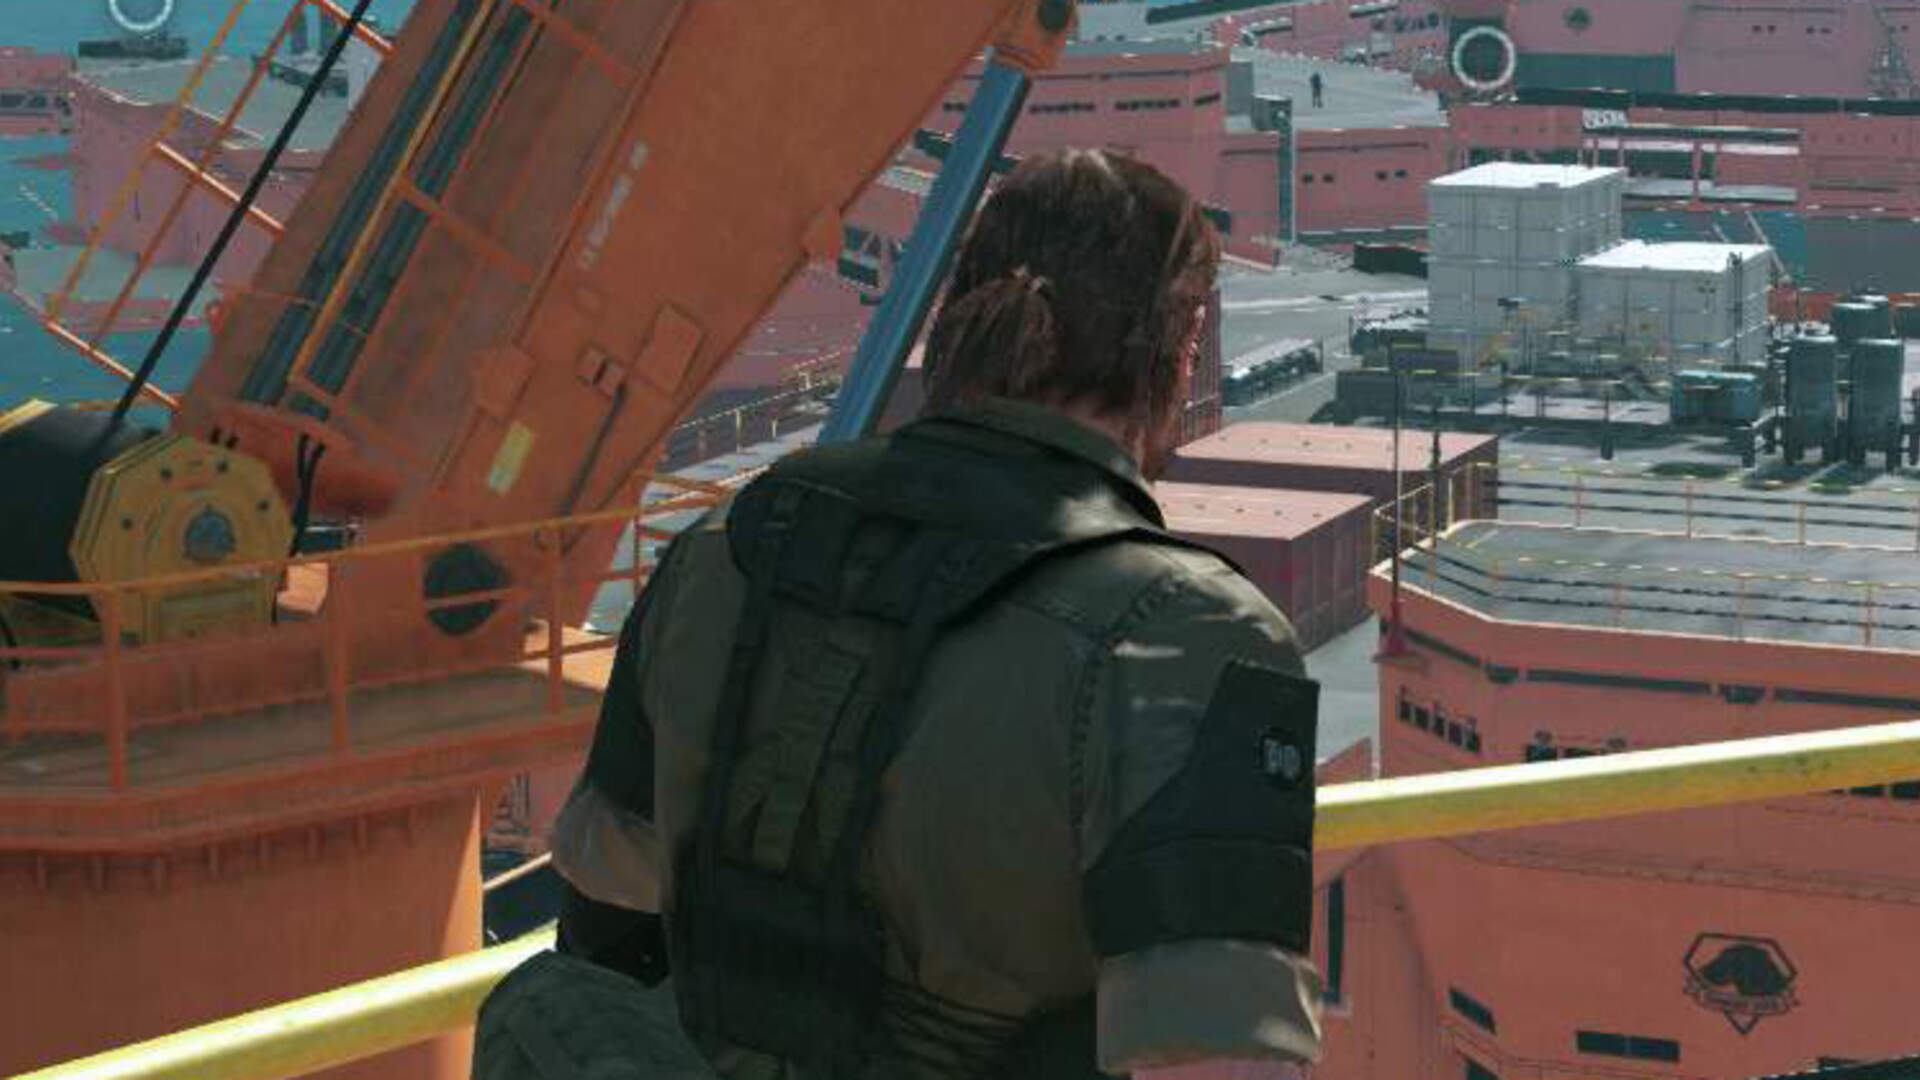 Metal Gear Solid 5 - Footprints of Phantoms Mission Guide - Mission 15 Walkthrough - How to get an S Rank